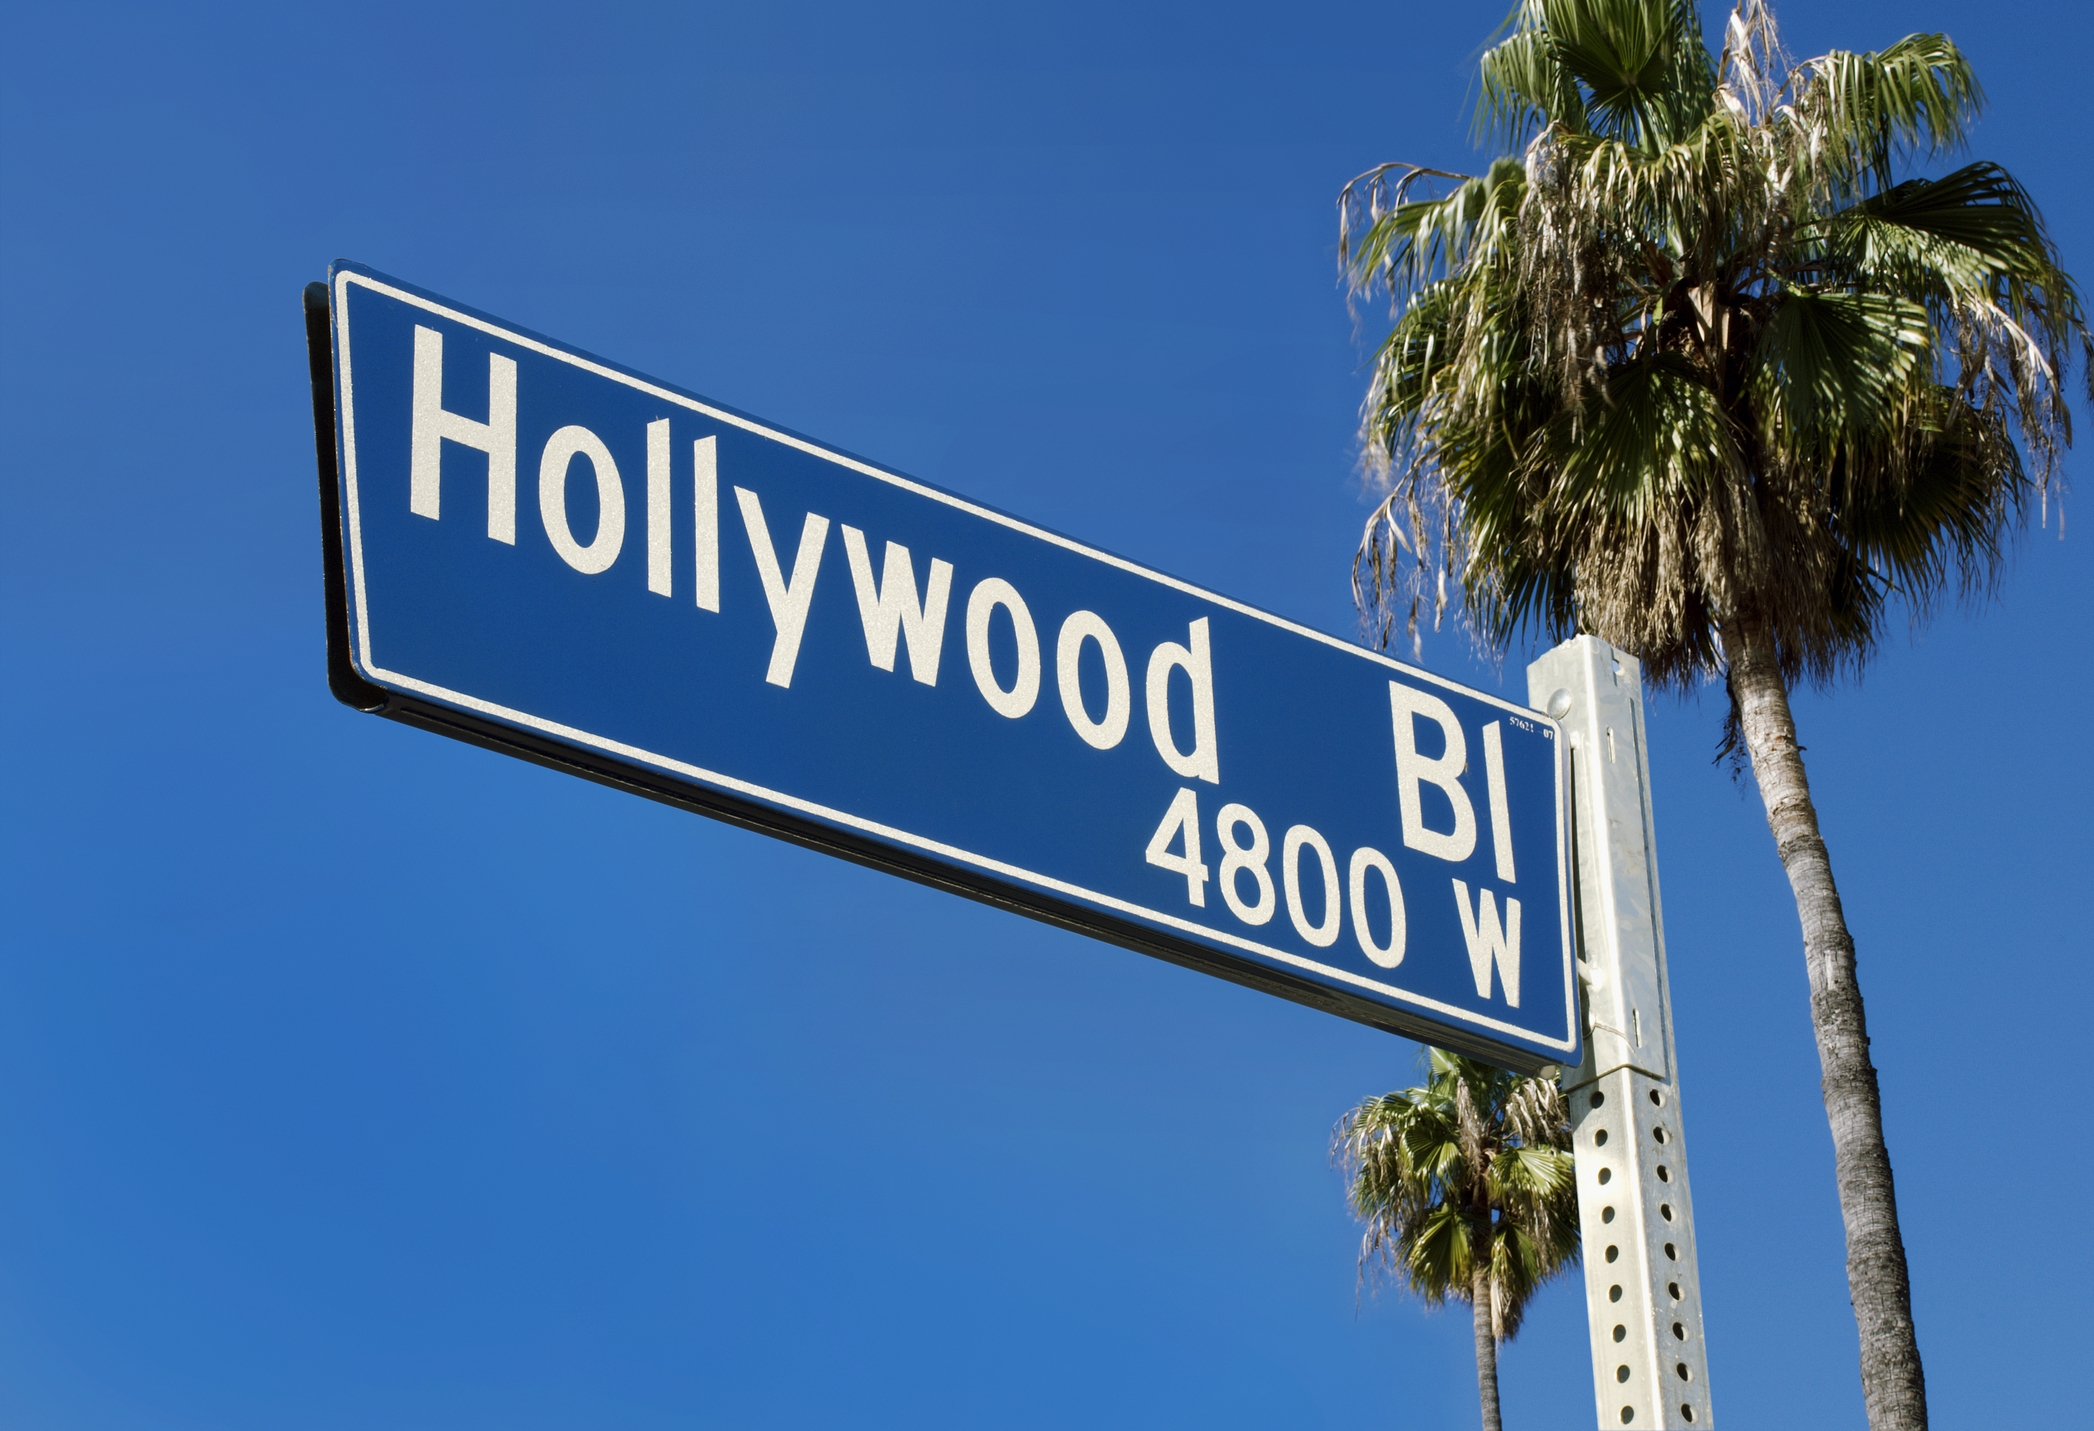 https://cursosdeinglesnoexterior.files.wordpress.com/2010/08/los_angeles_hollywood_street_sign.jpg